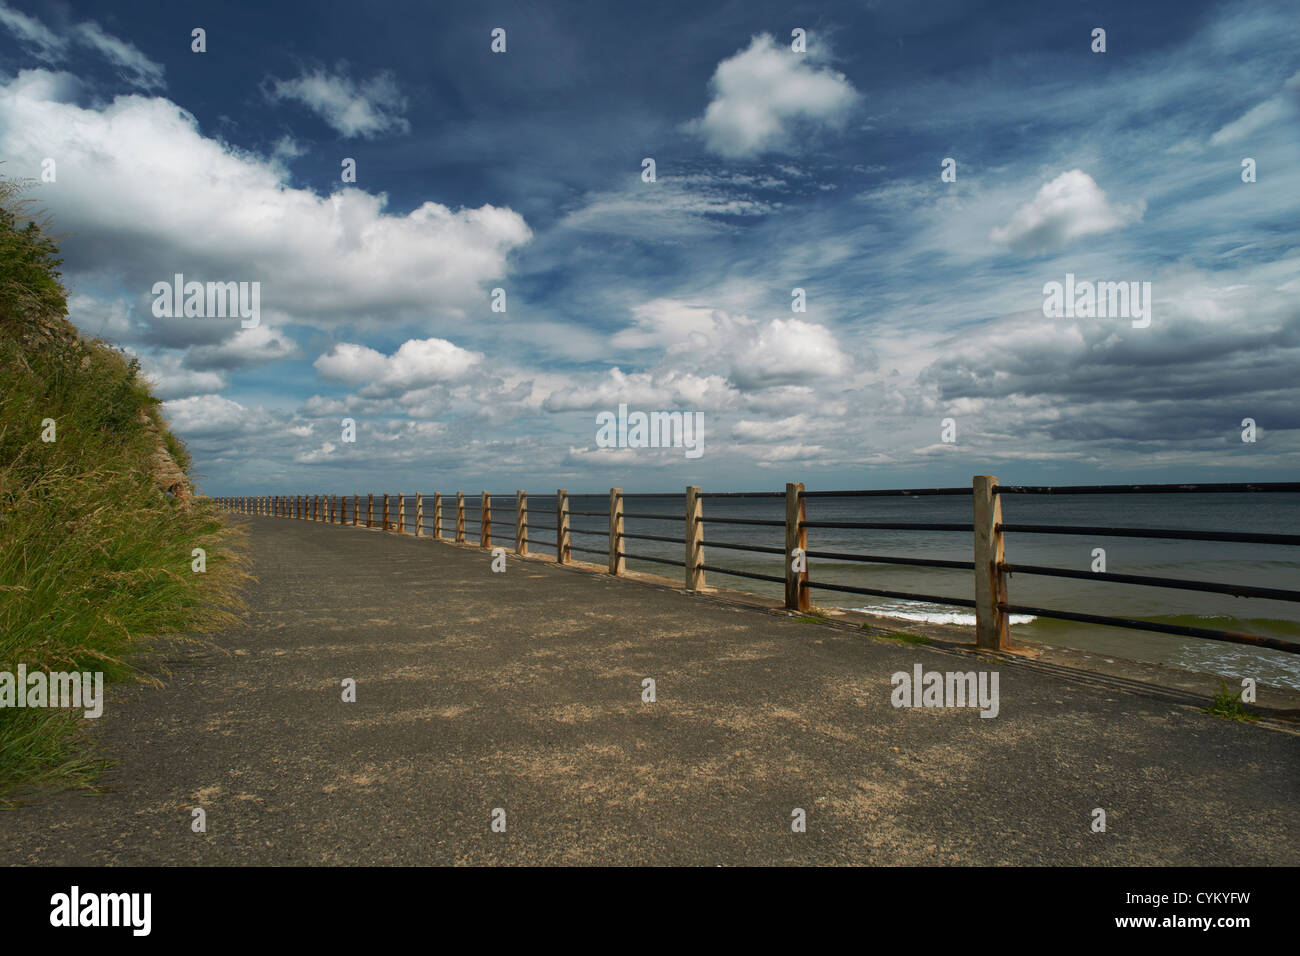 Wooden posts on paved coastal road - Stock Image